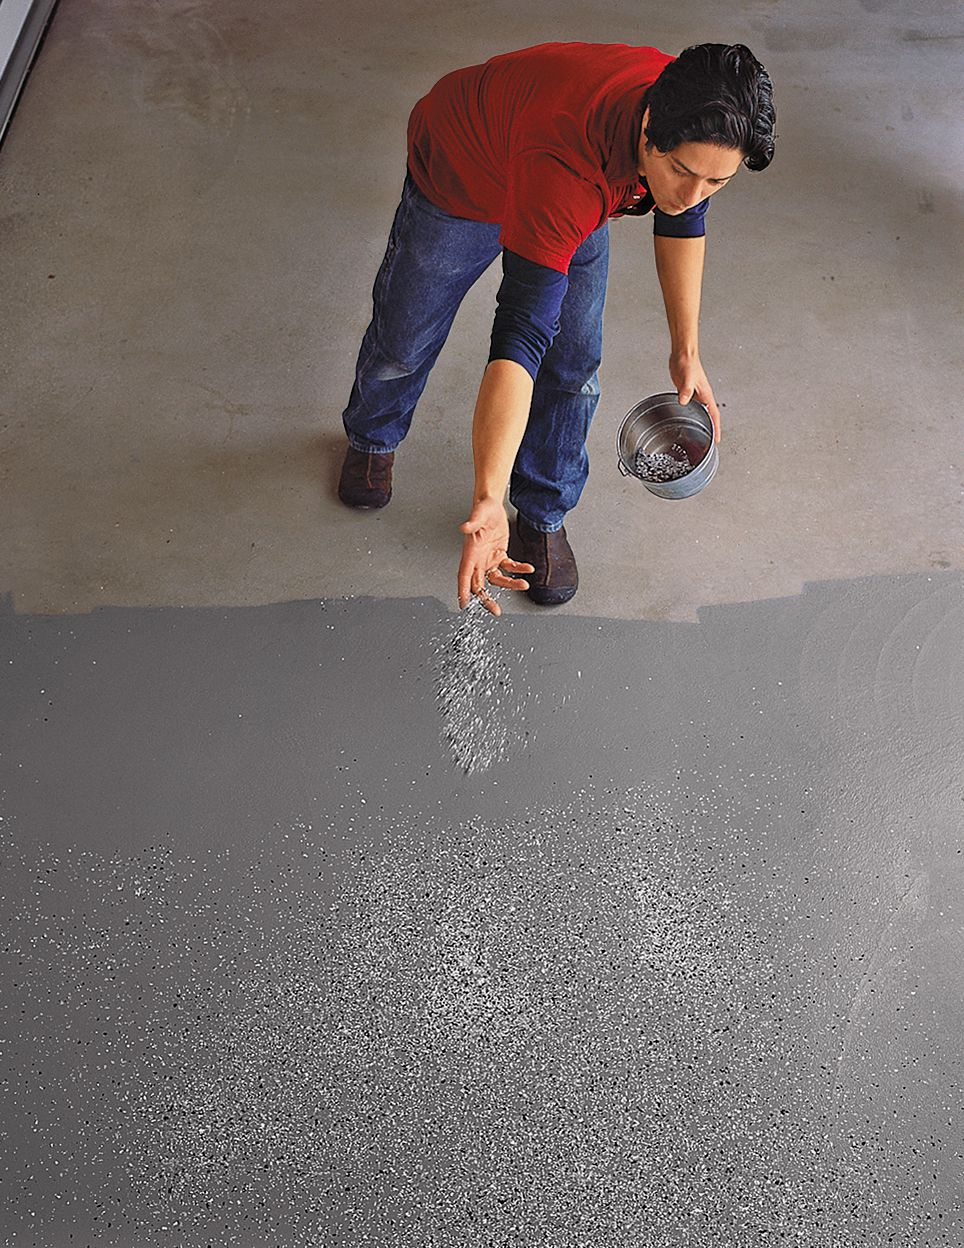 Person sprinkling color flakes onto the garage floor by hand.